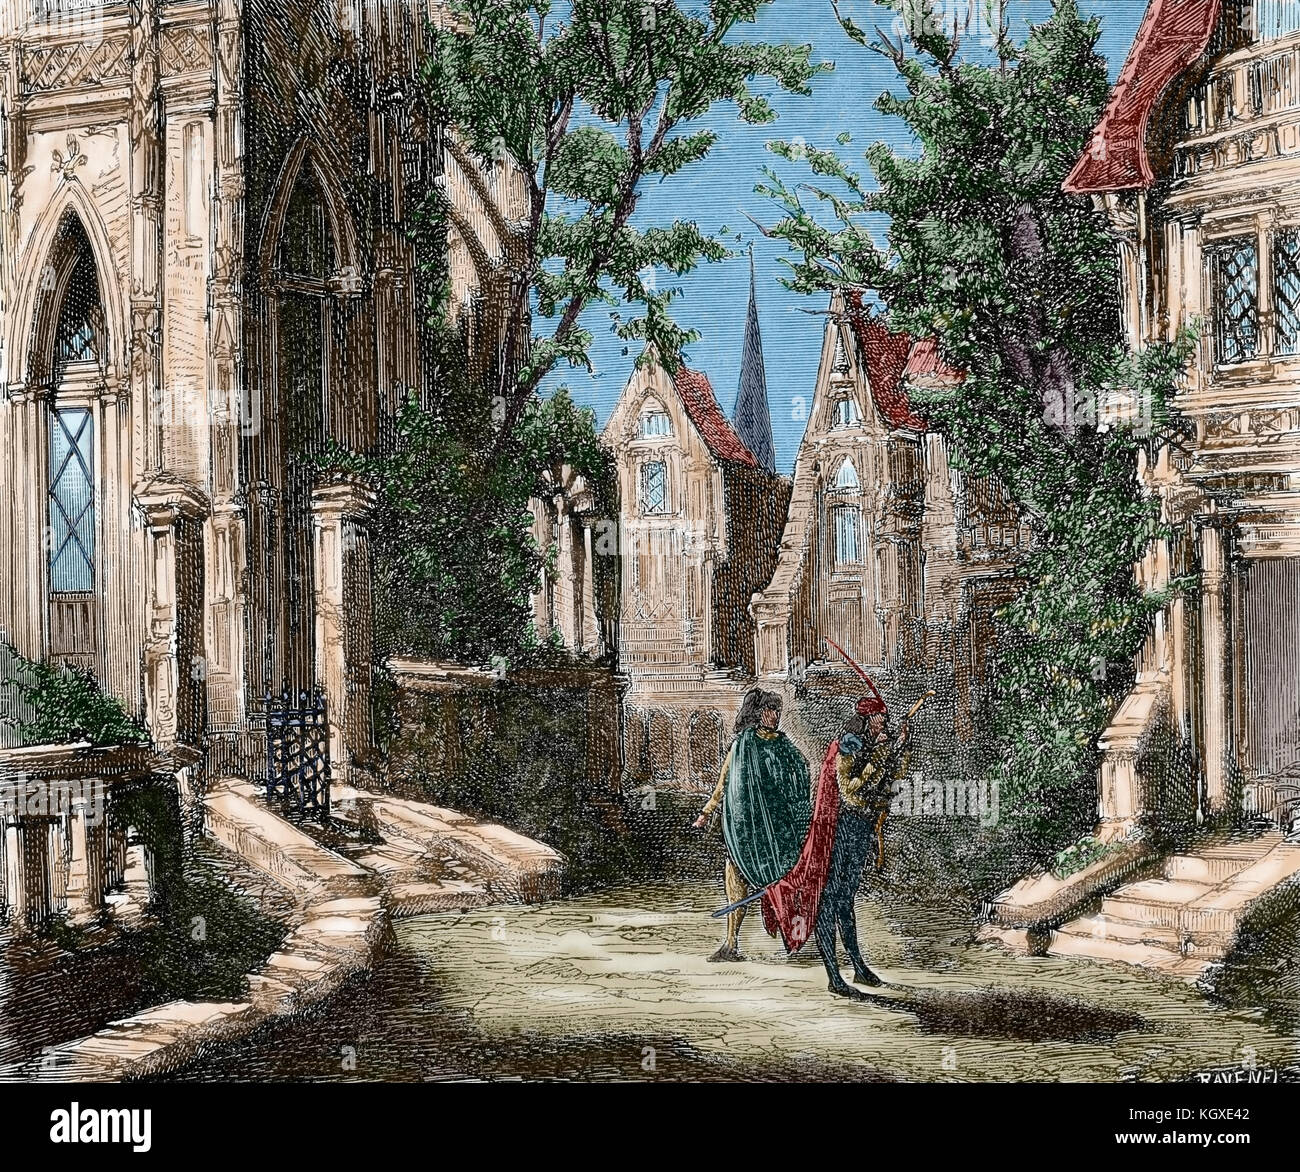 German Legend. Faust and Mephistopheles. Engraving by Ravenel. 'Semanario Familiar Pintoresco', 1876. Colored. - Stock Image